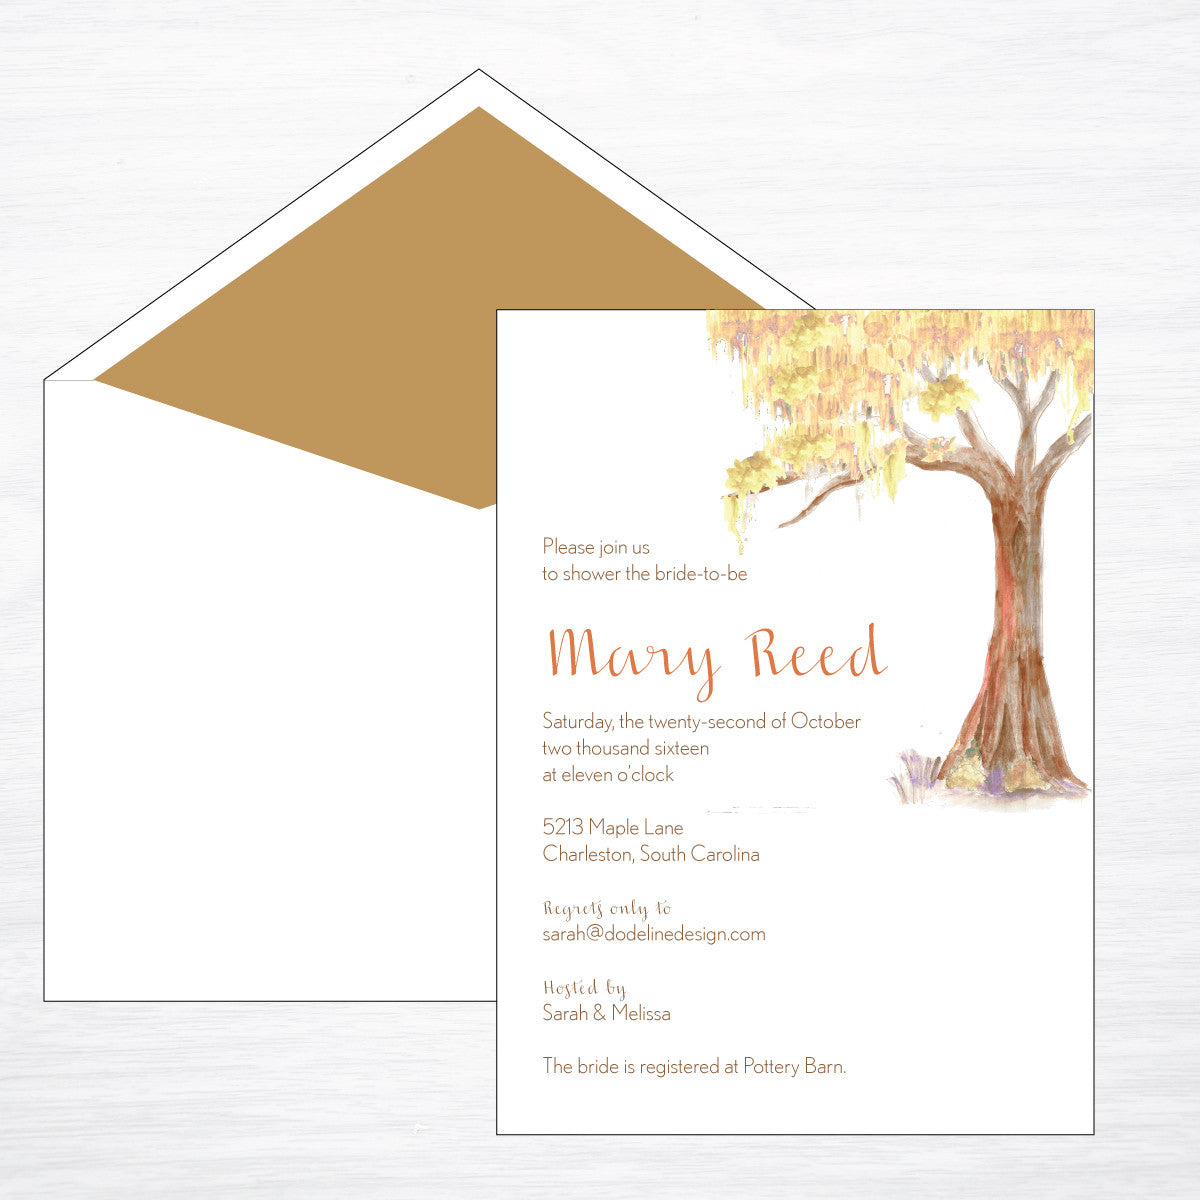 Fall Gathering - shop greeting cards, handmade stationery, & wedding invitations by dodeline design